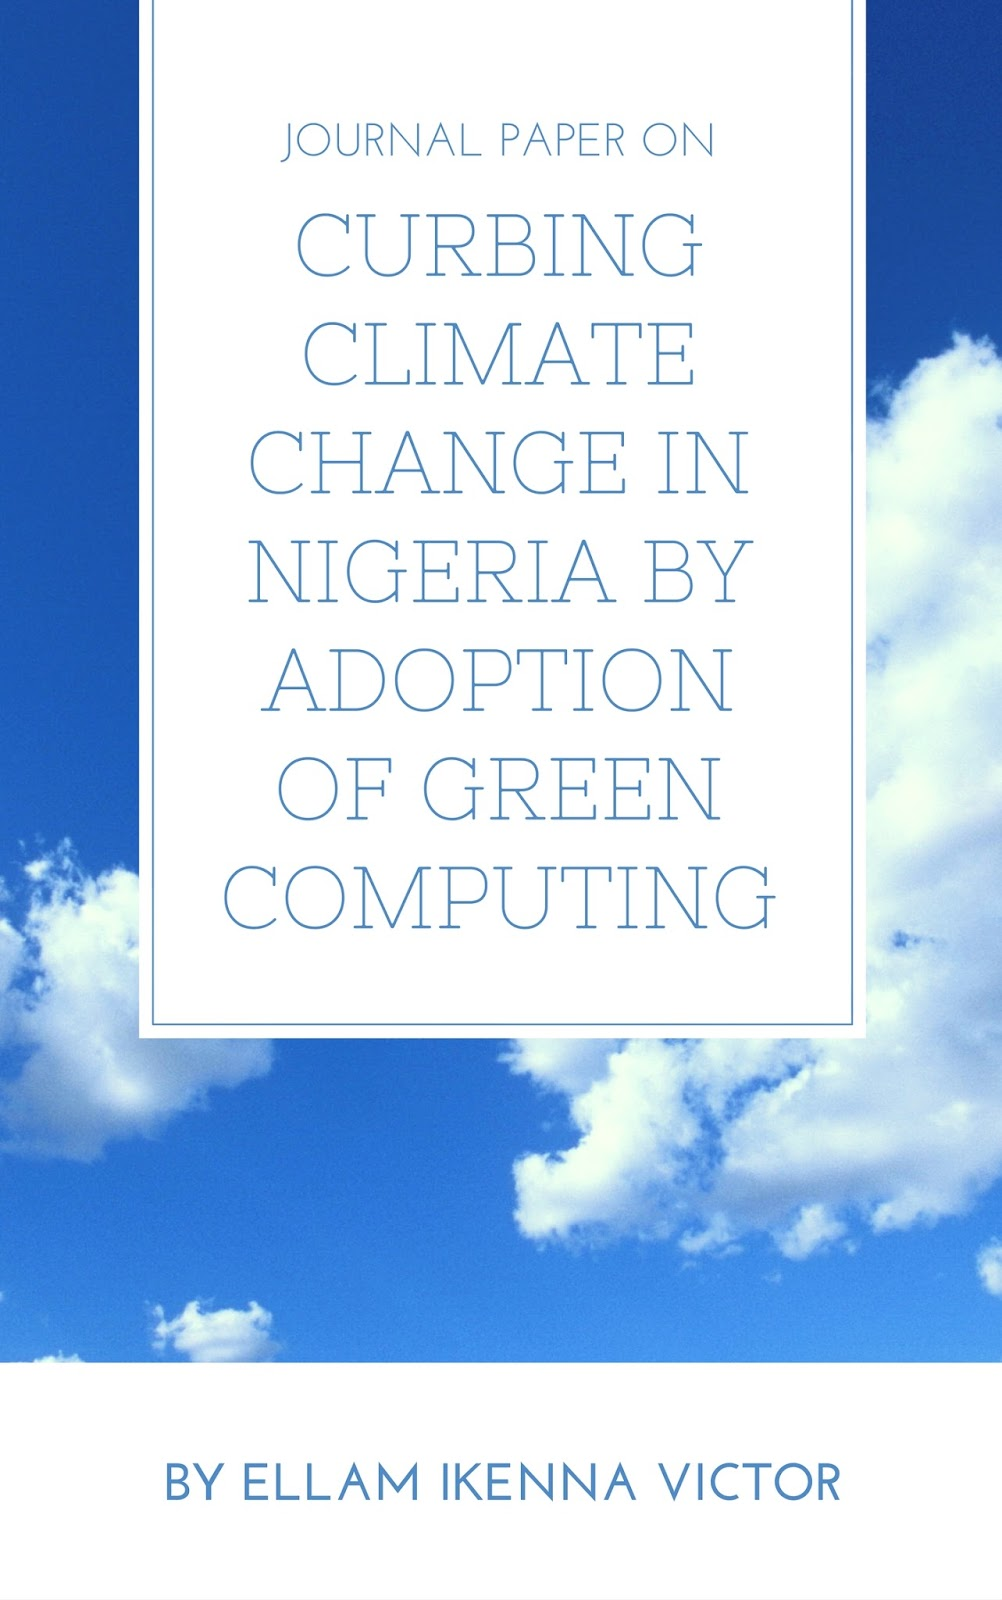 Journal Paper On Curbing Climate Change In Nigeria By Adoption Of Green Computing by Ellam Ikenna Victor